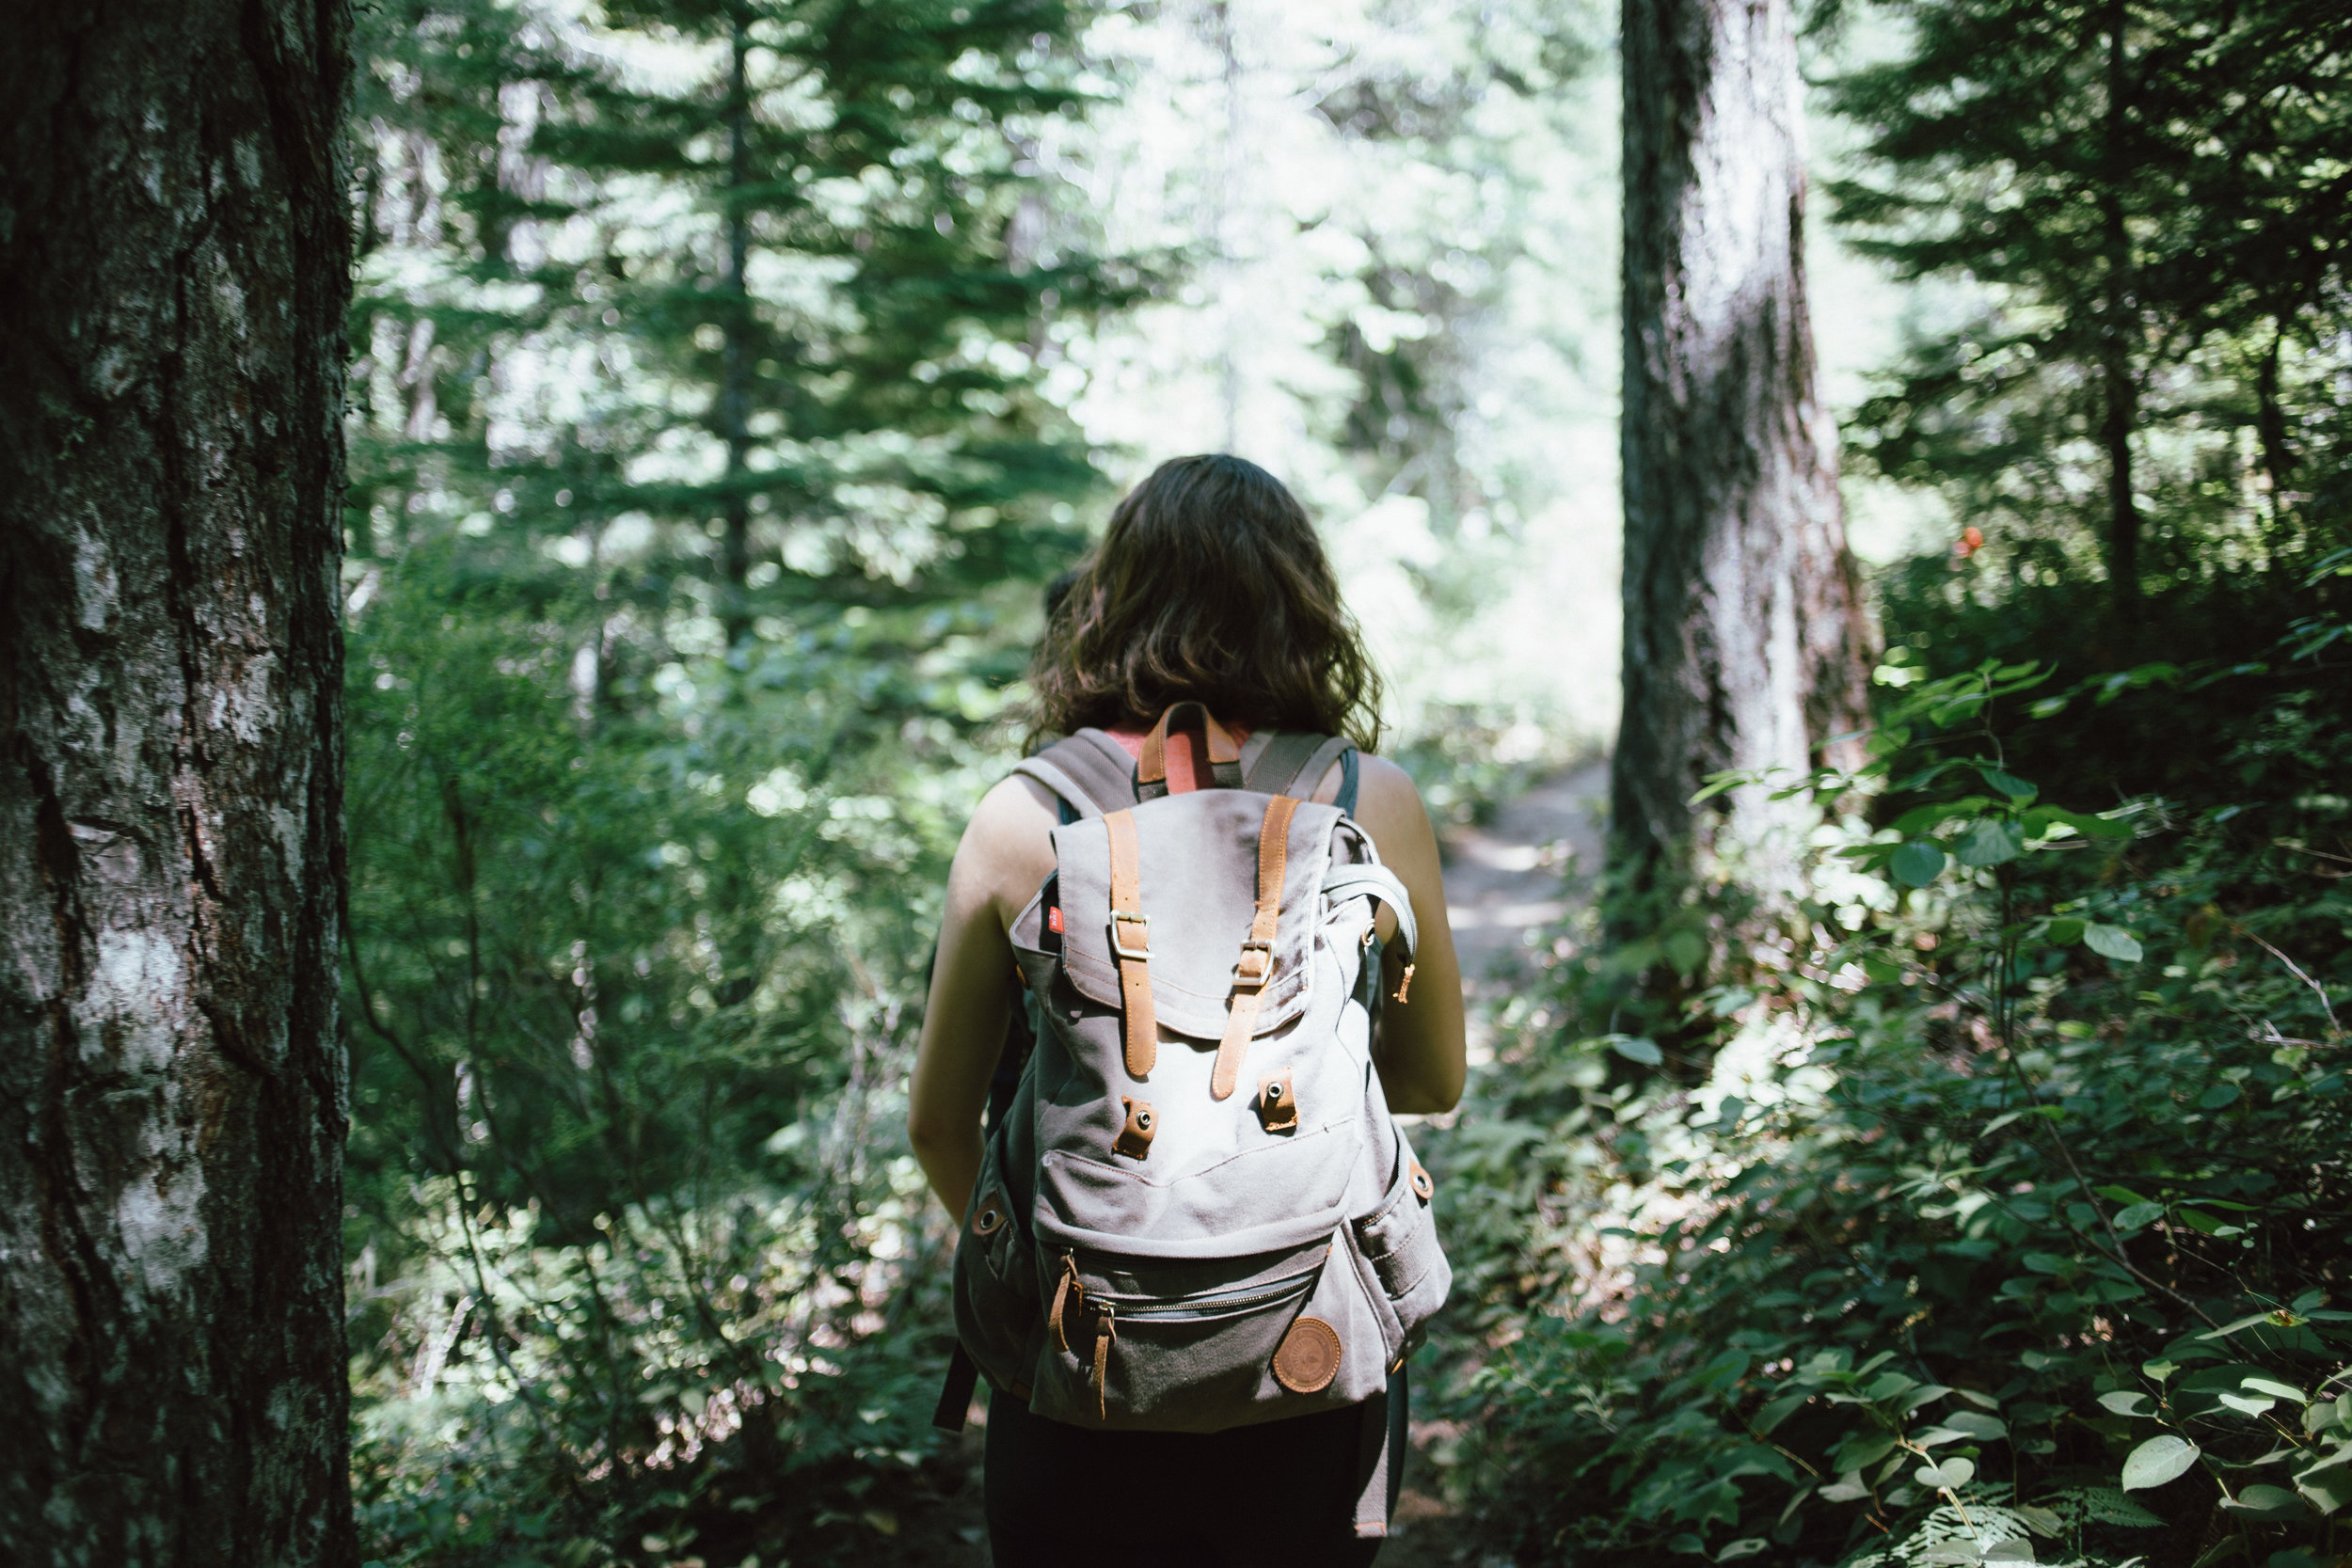 Hikes on magnificent trails